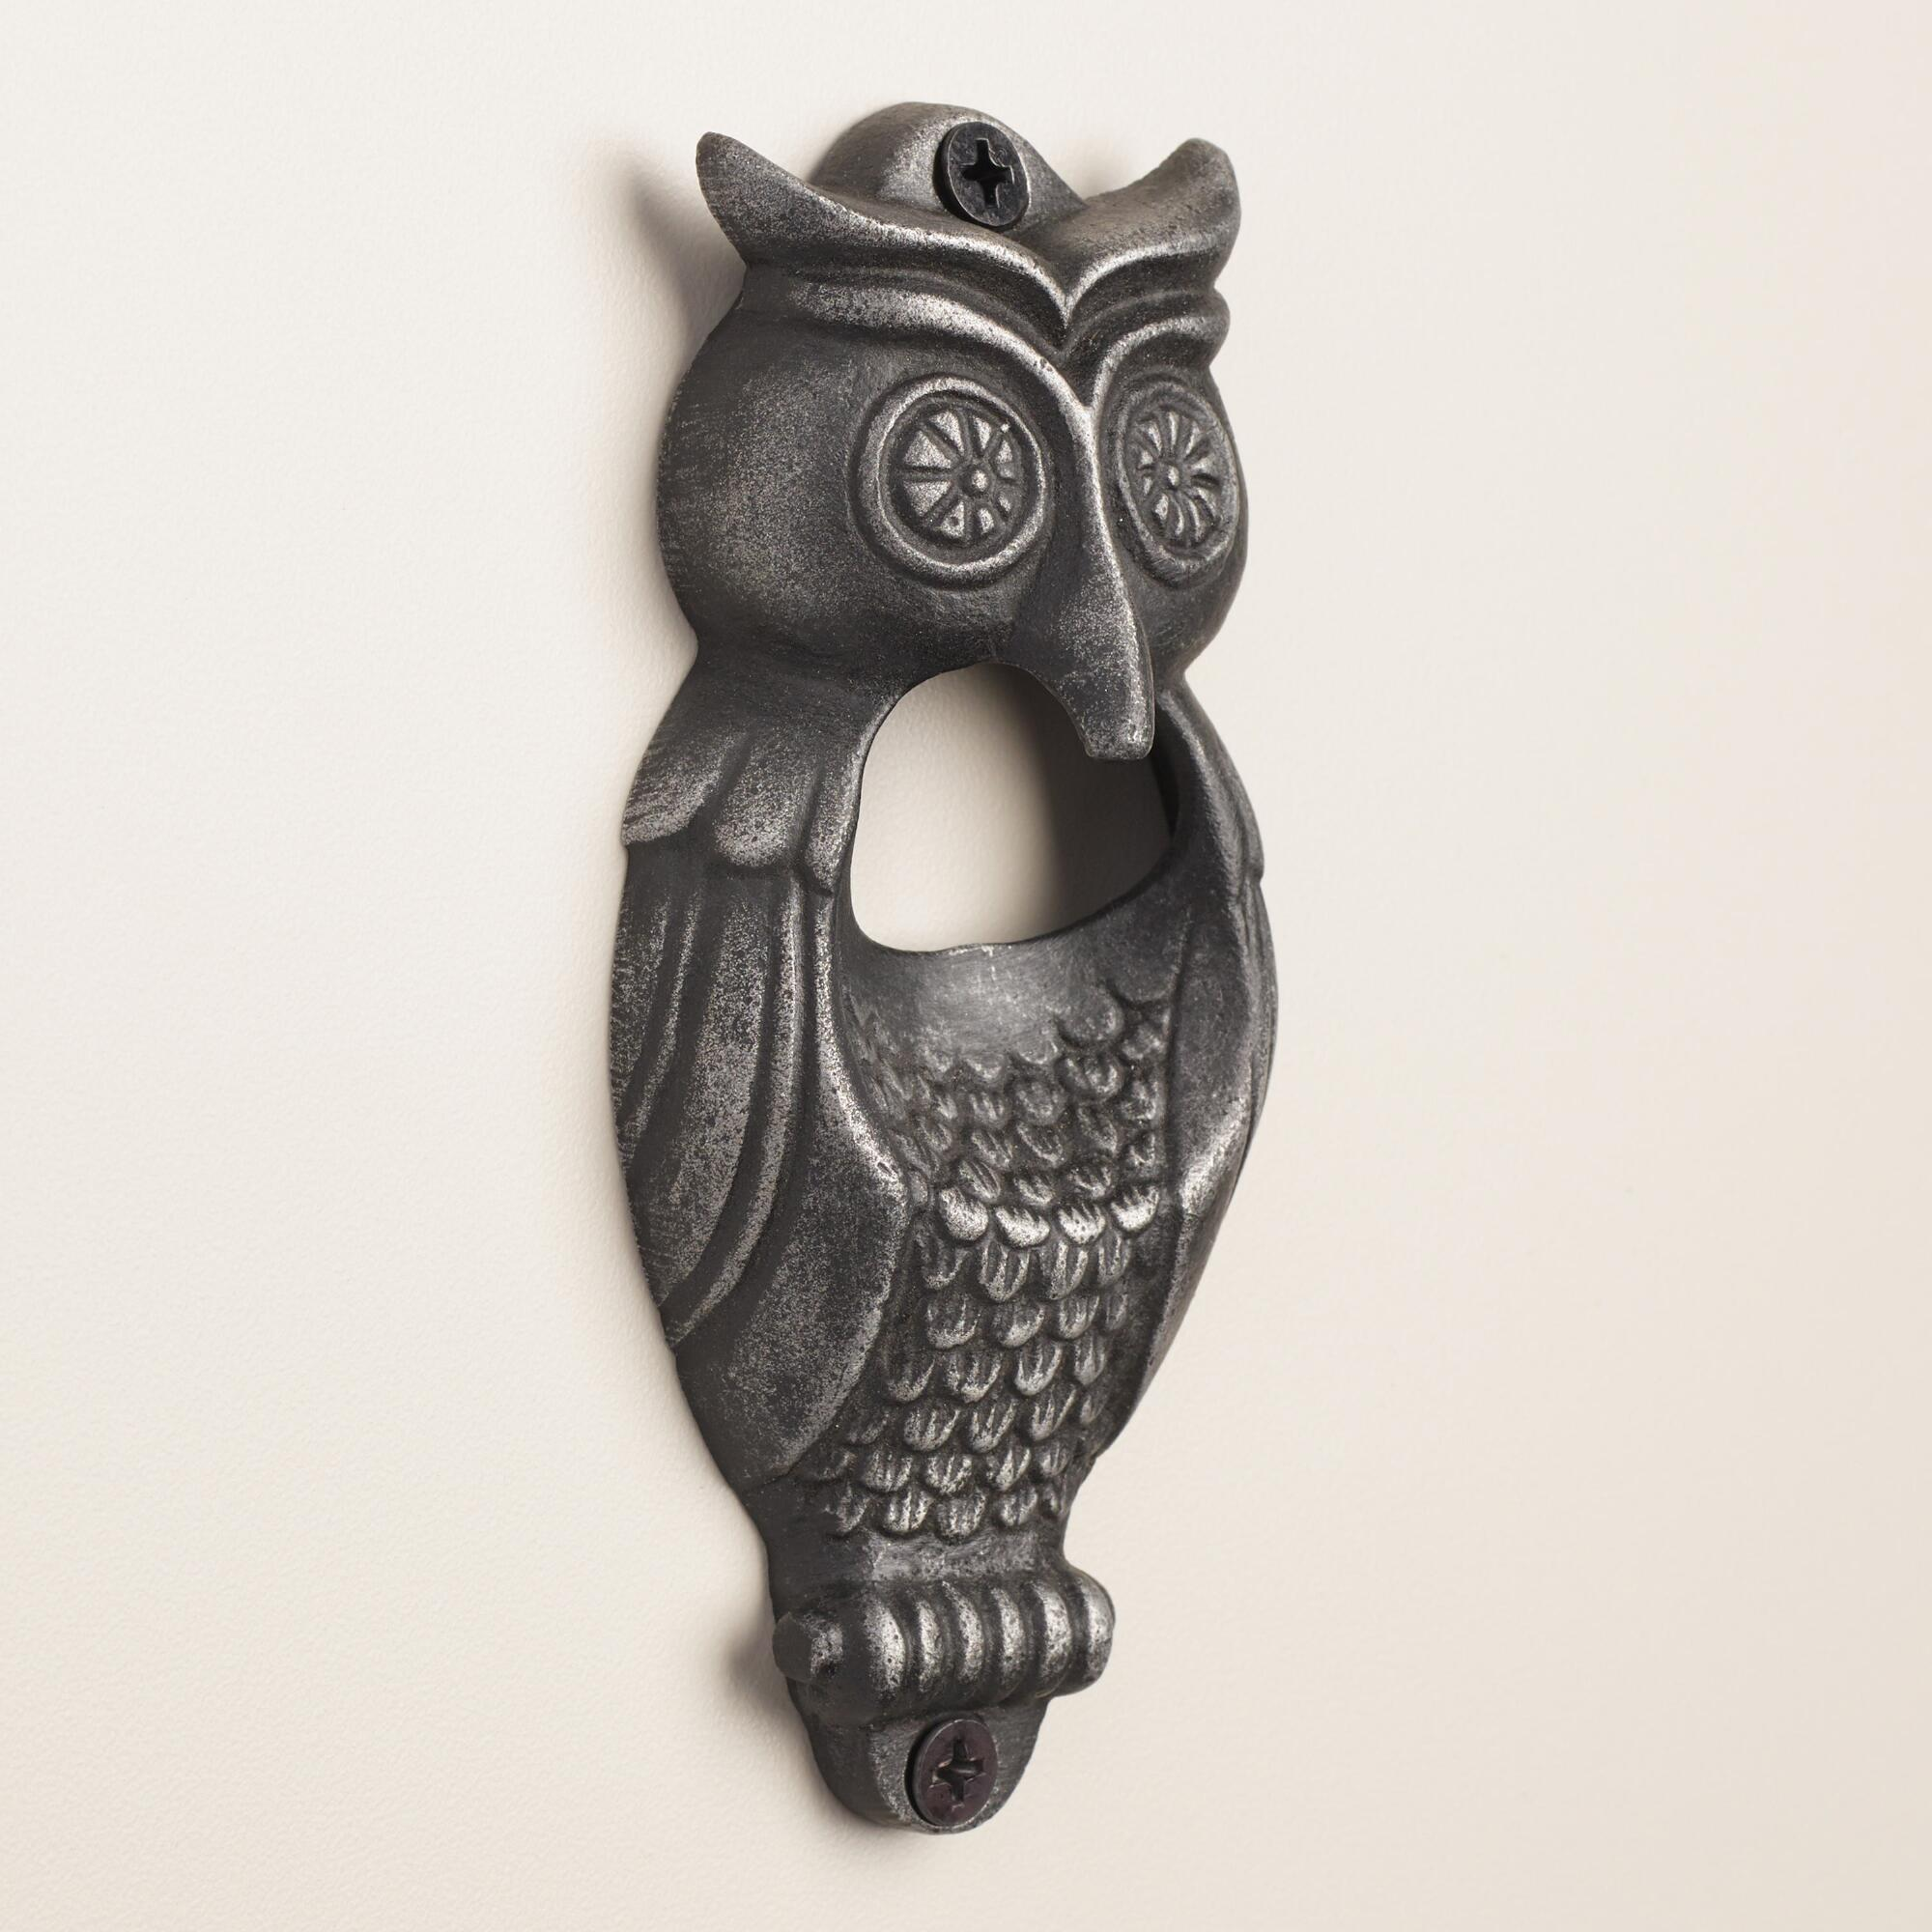 cost plus world market owl wall mounted bottle opener by world market shop your way online. Black Bedroom Furniture Sets. Home Design Ideas